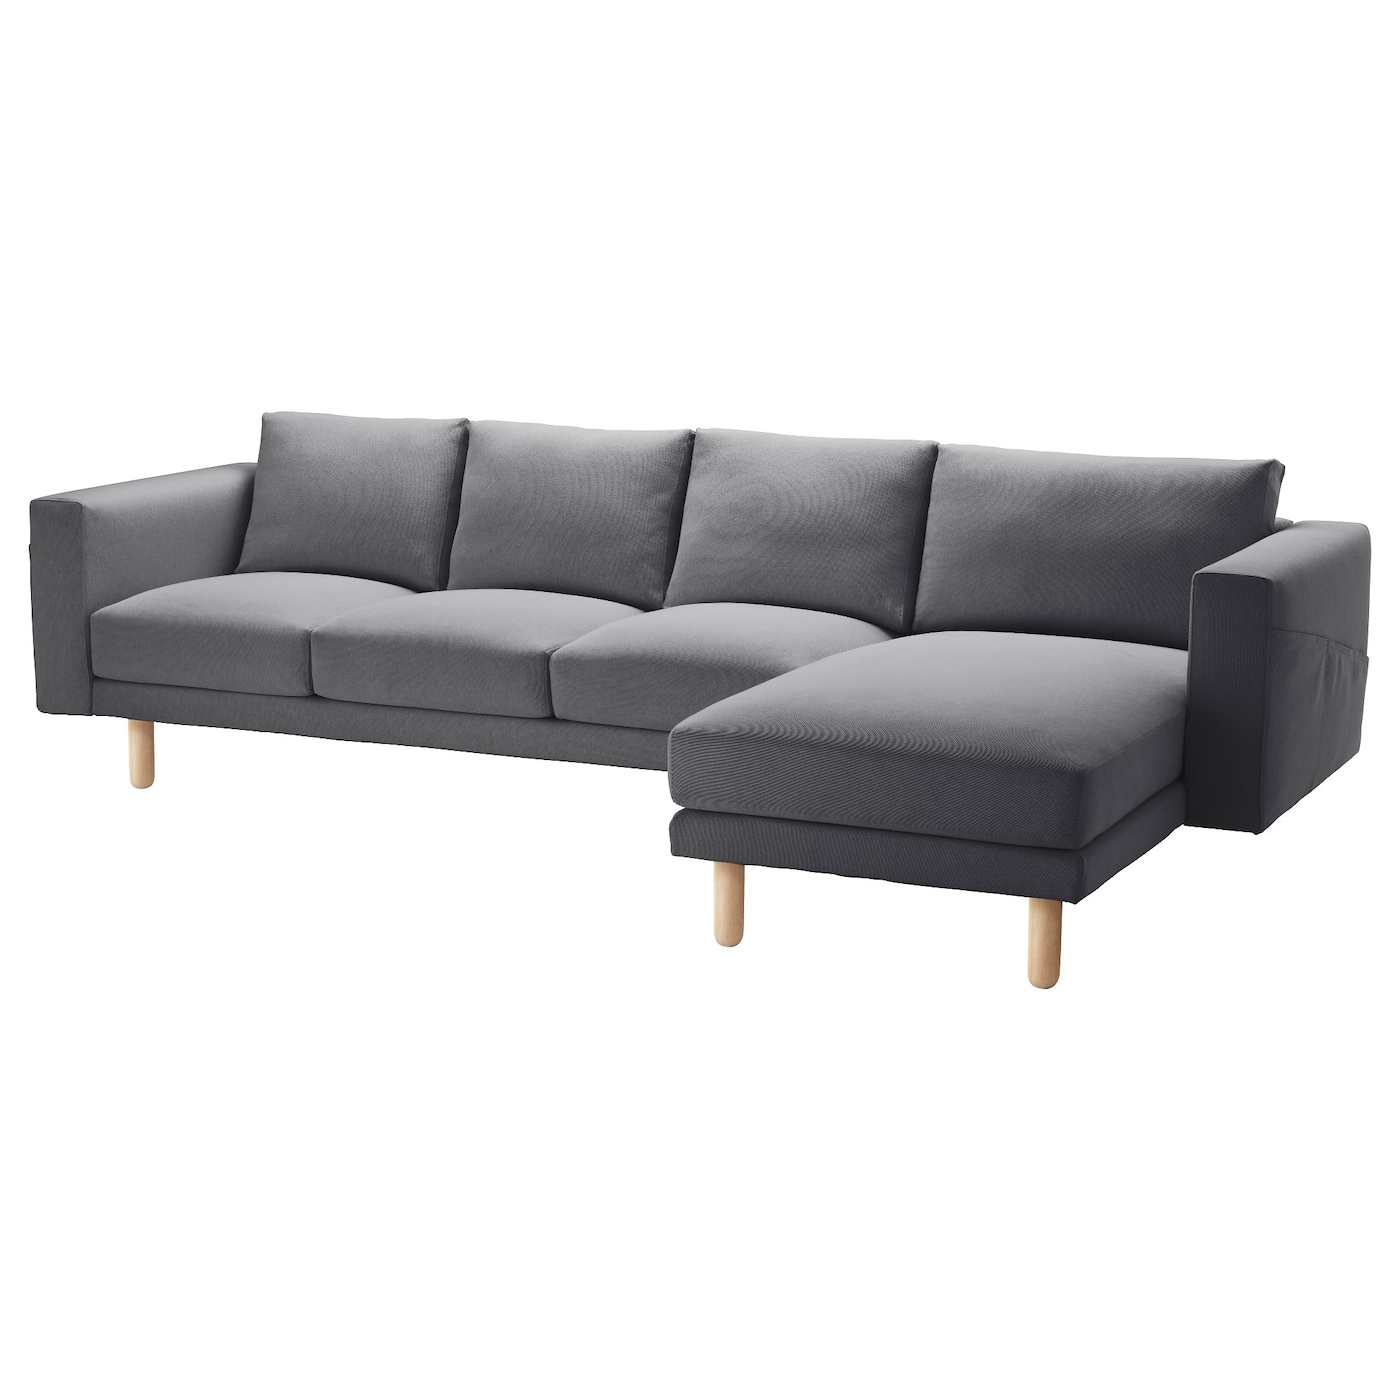 Norsborg 4 seat sofa with chaise longue finnsta dark grey for Ikea couch planer